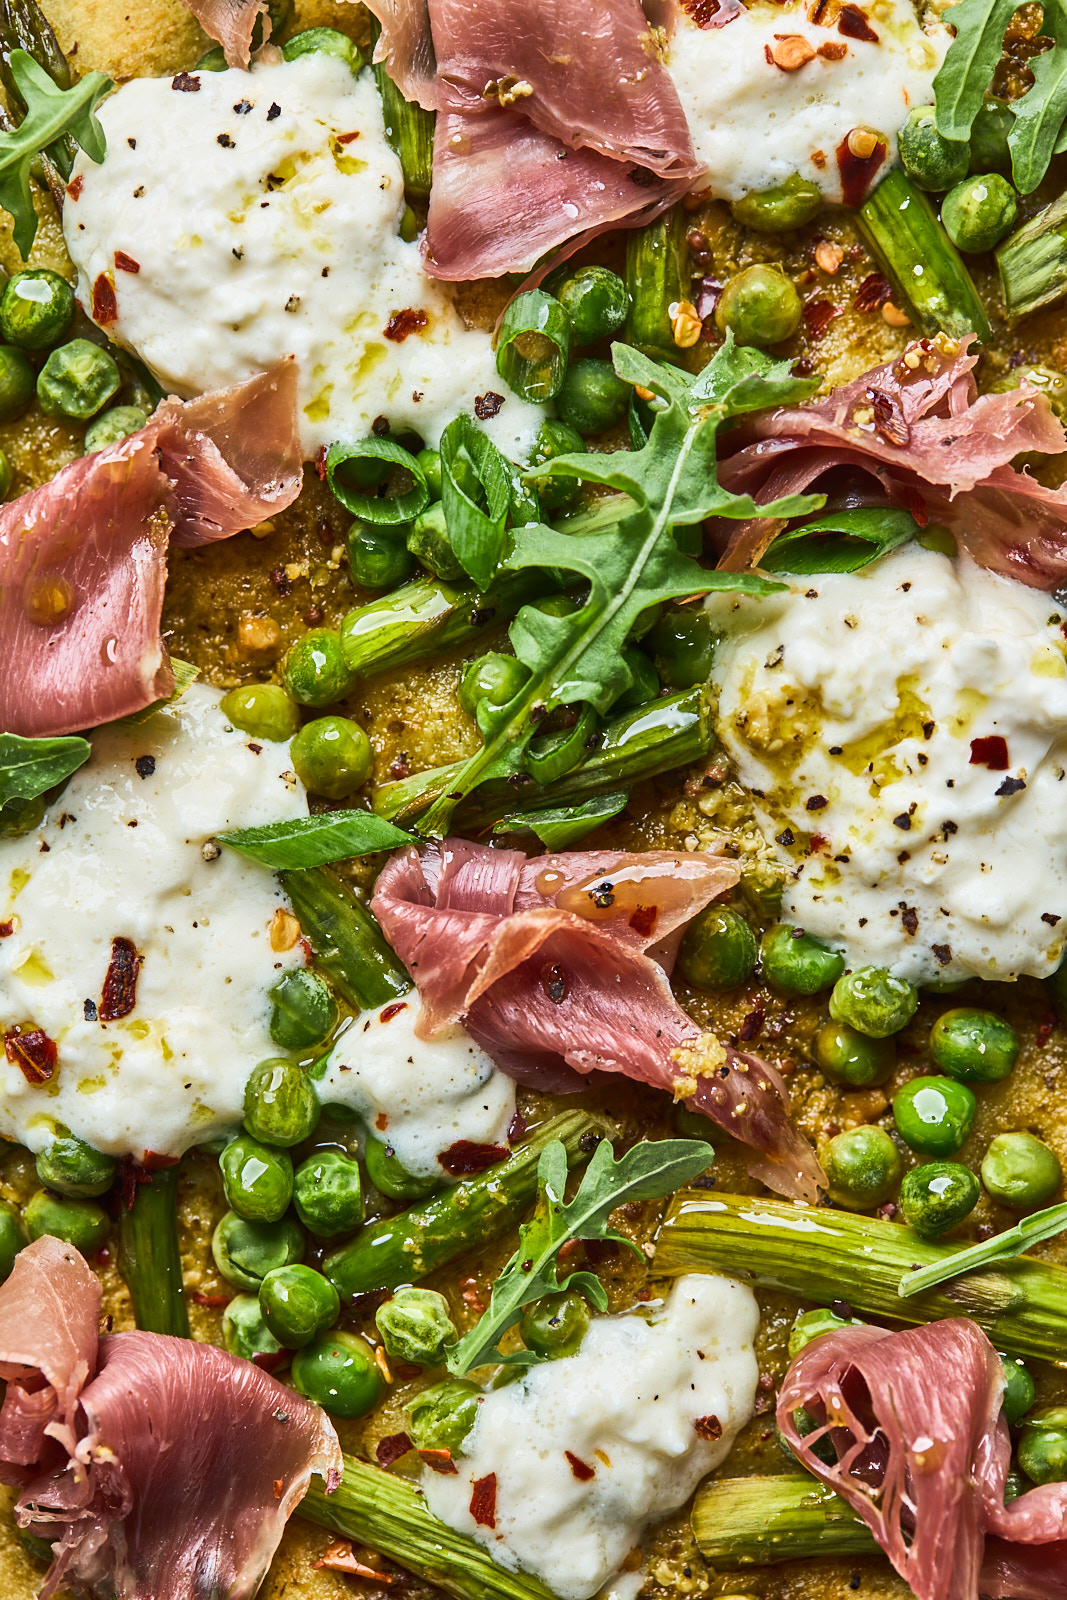 Flatbread Pizza With Pesto Asparagus Prosciutto and Burrata